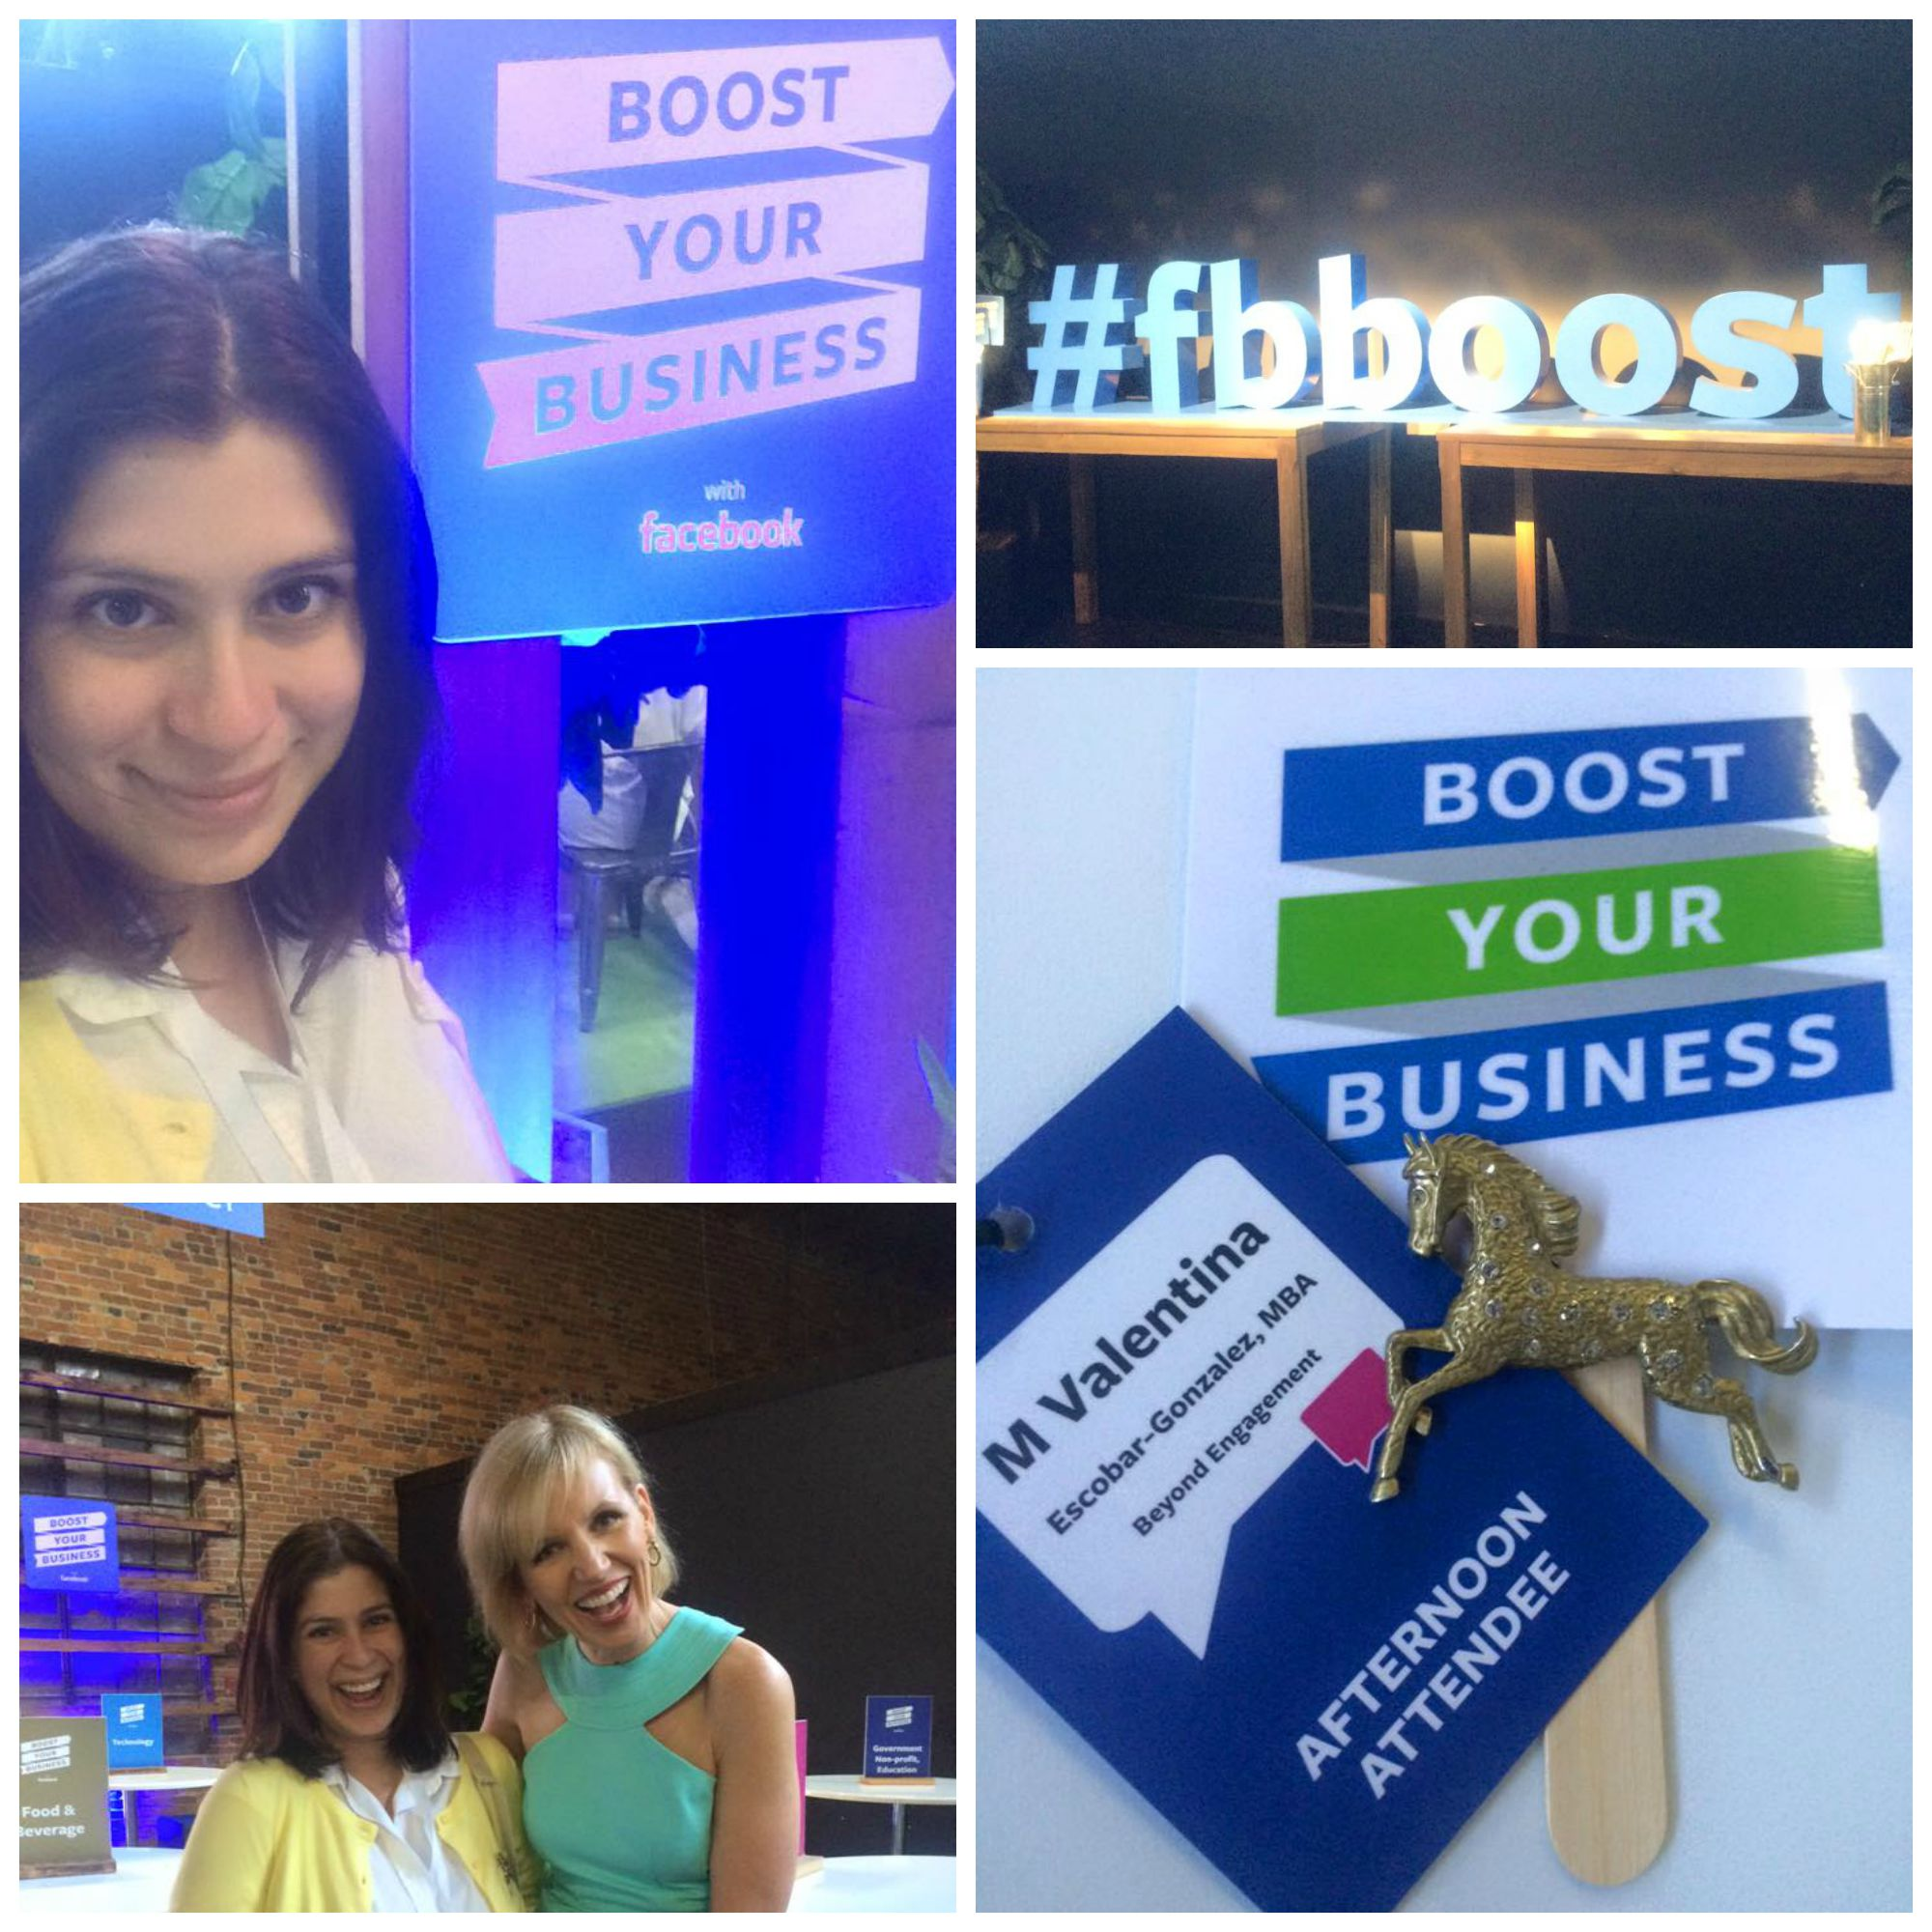 Facebook Boost Your Business 2015 in Nashville Collage, with Mari Smith